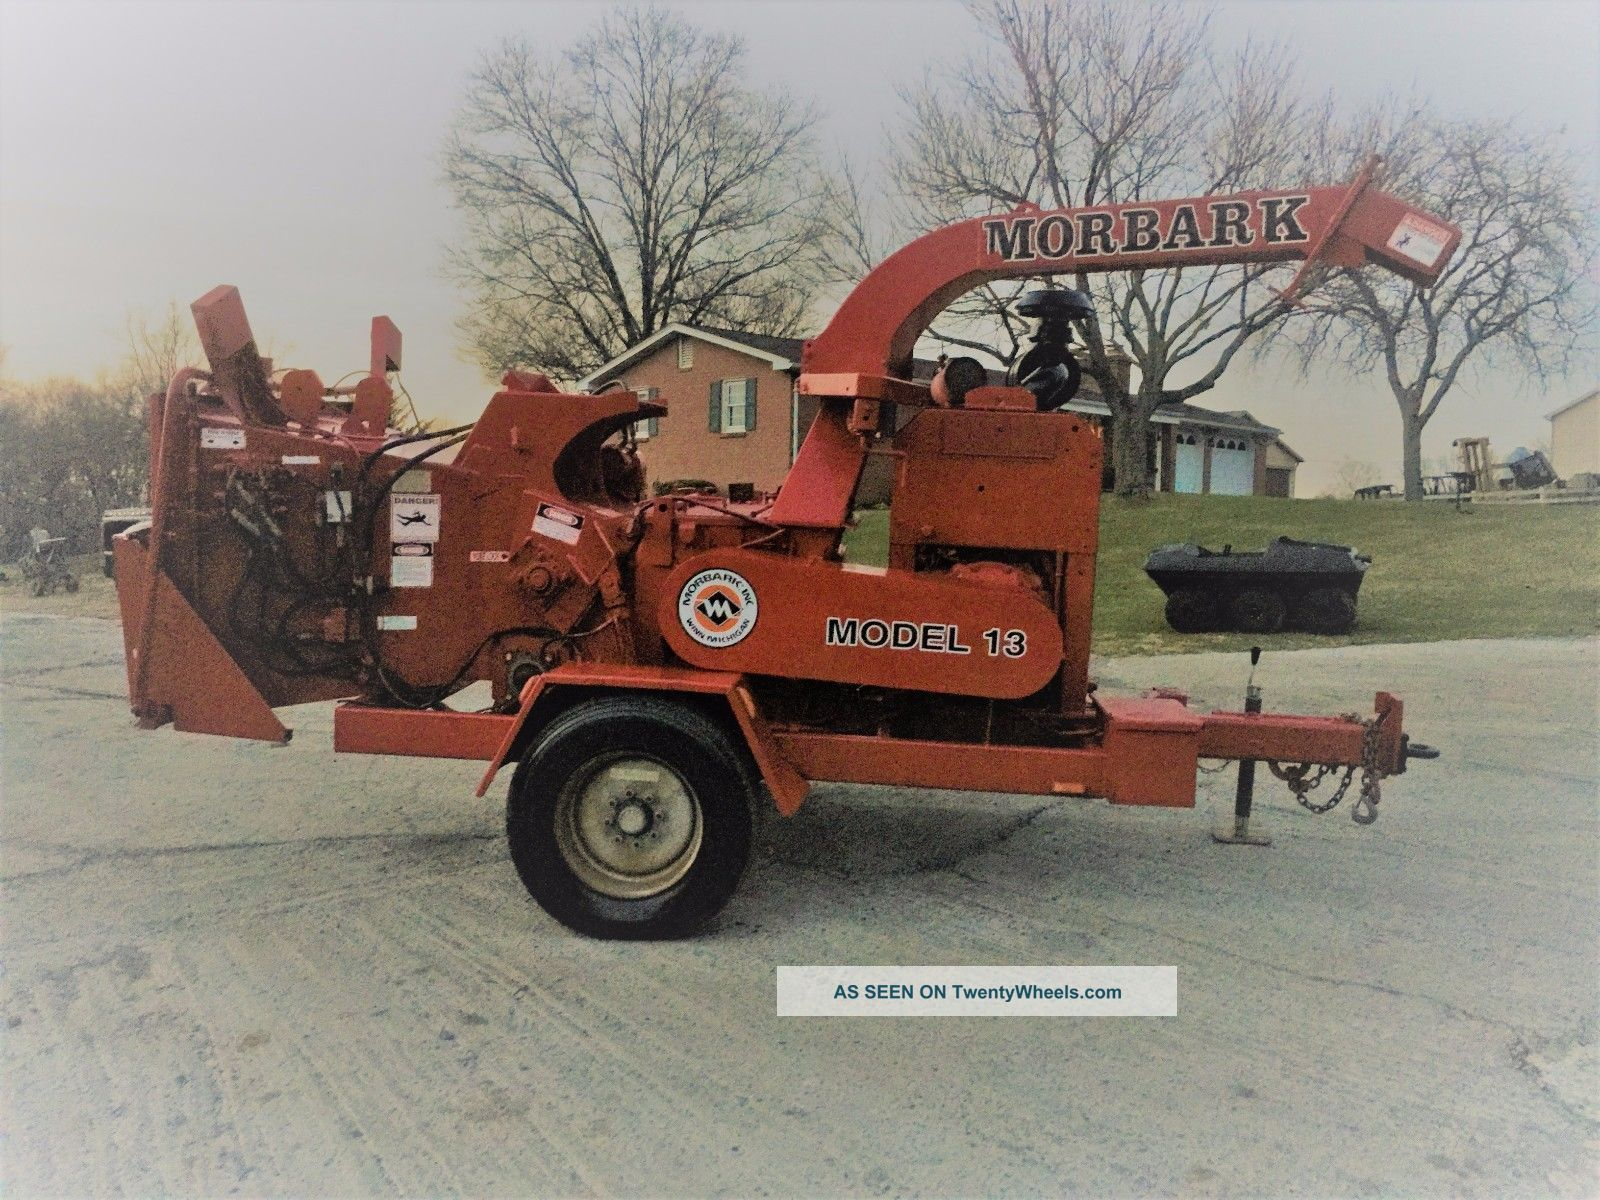 Morbark 15 Tornado Wood Chipper Brush Drum Chipper Disk Mulcher Jd 140 Hp Wood Chippers & Stump Grinders photo